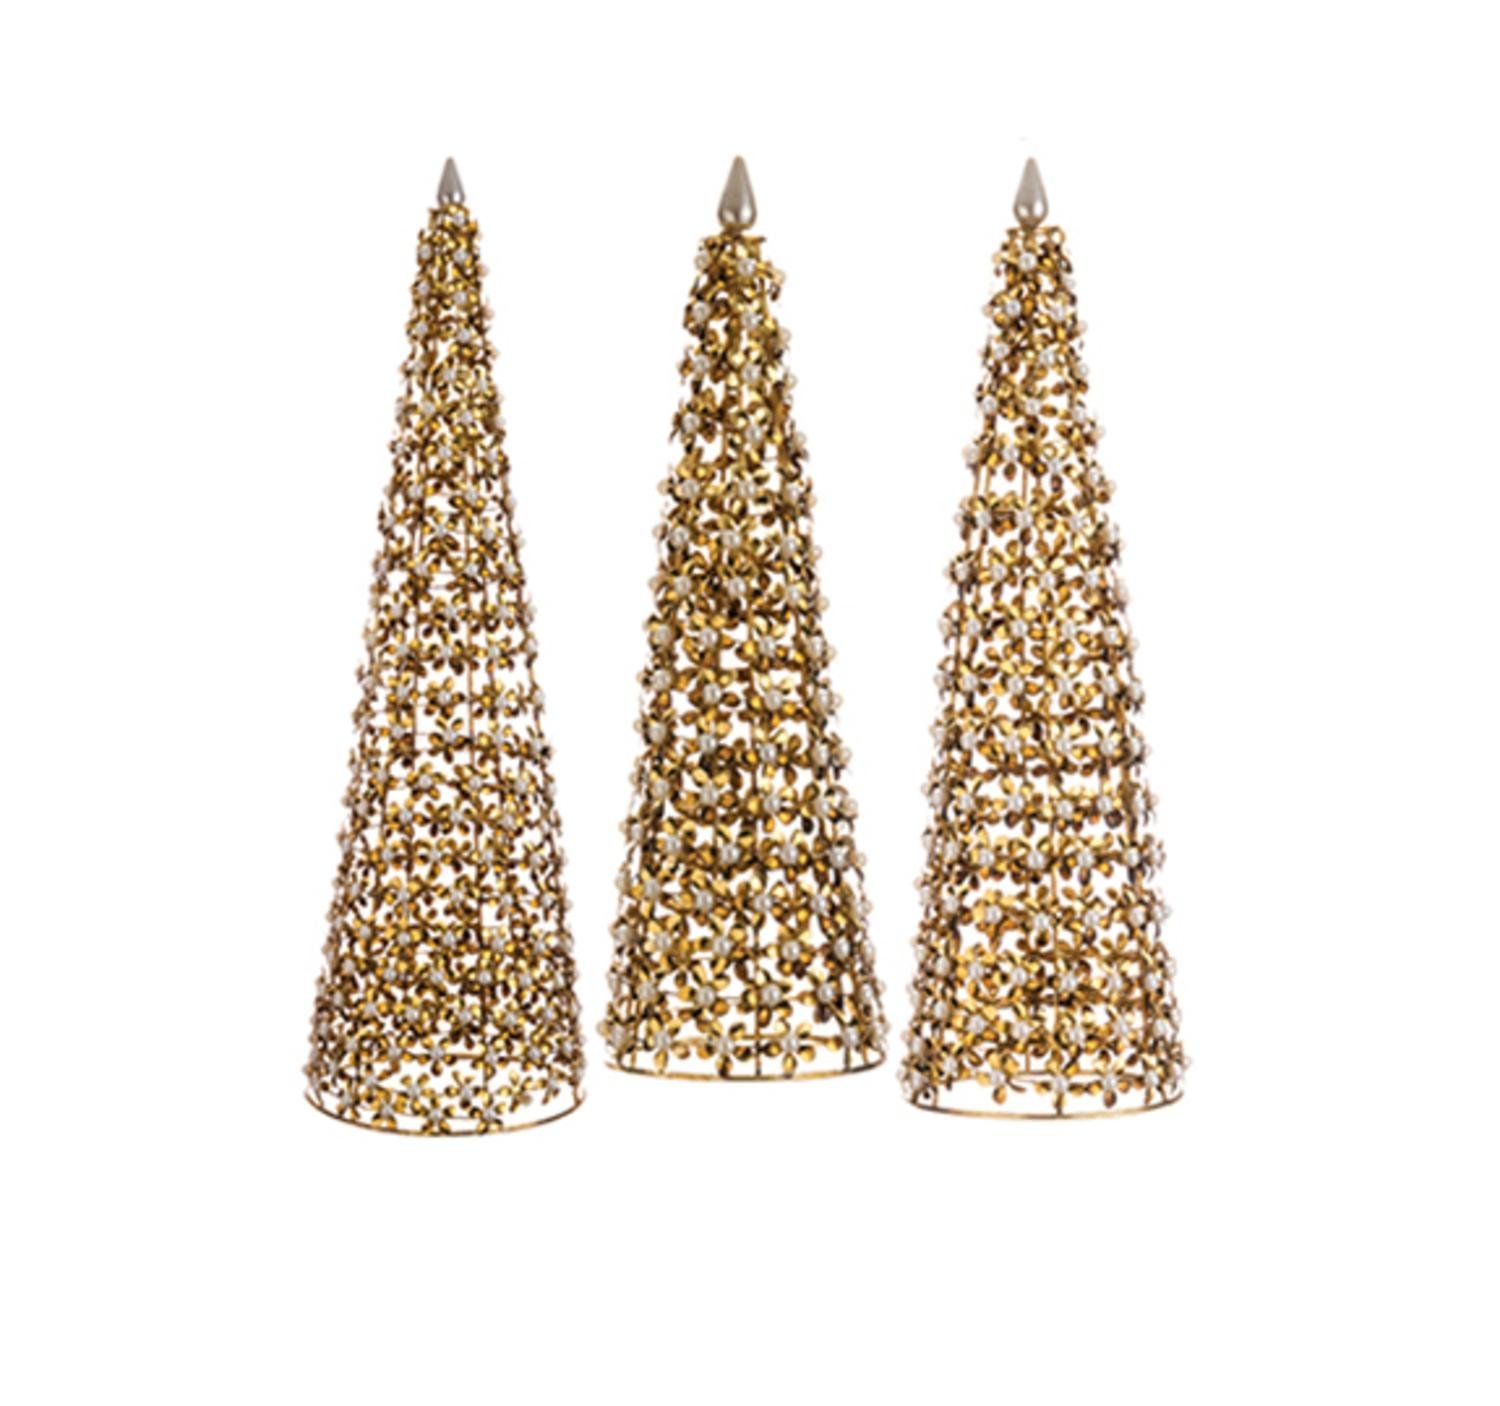 Set of 3 Glamour Time Antique-Style Gold Flower and Pearl Cone Tree Table Top Decorations 20'' by Allstate